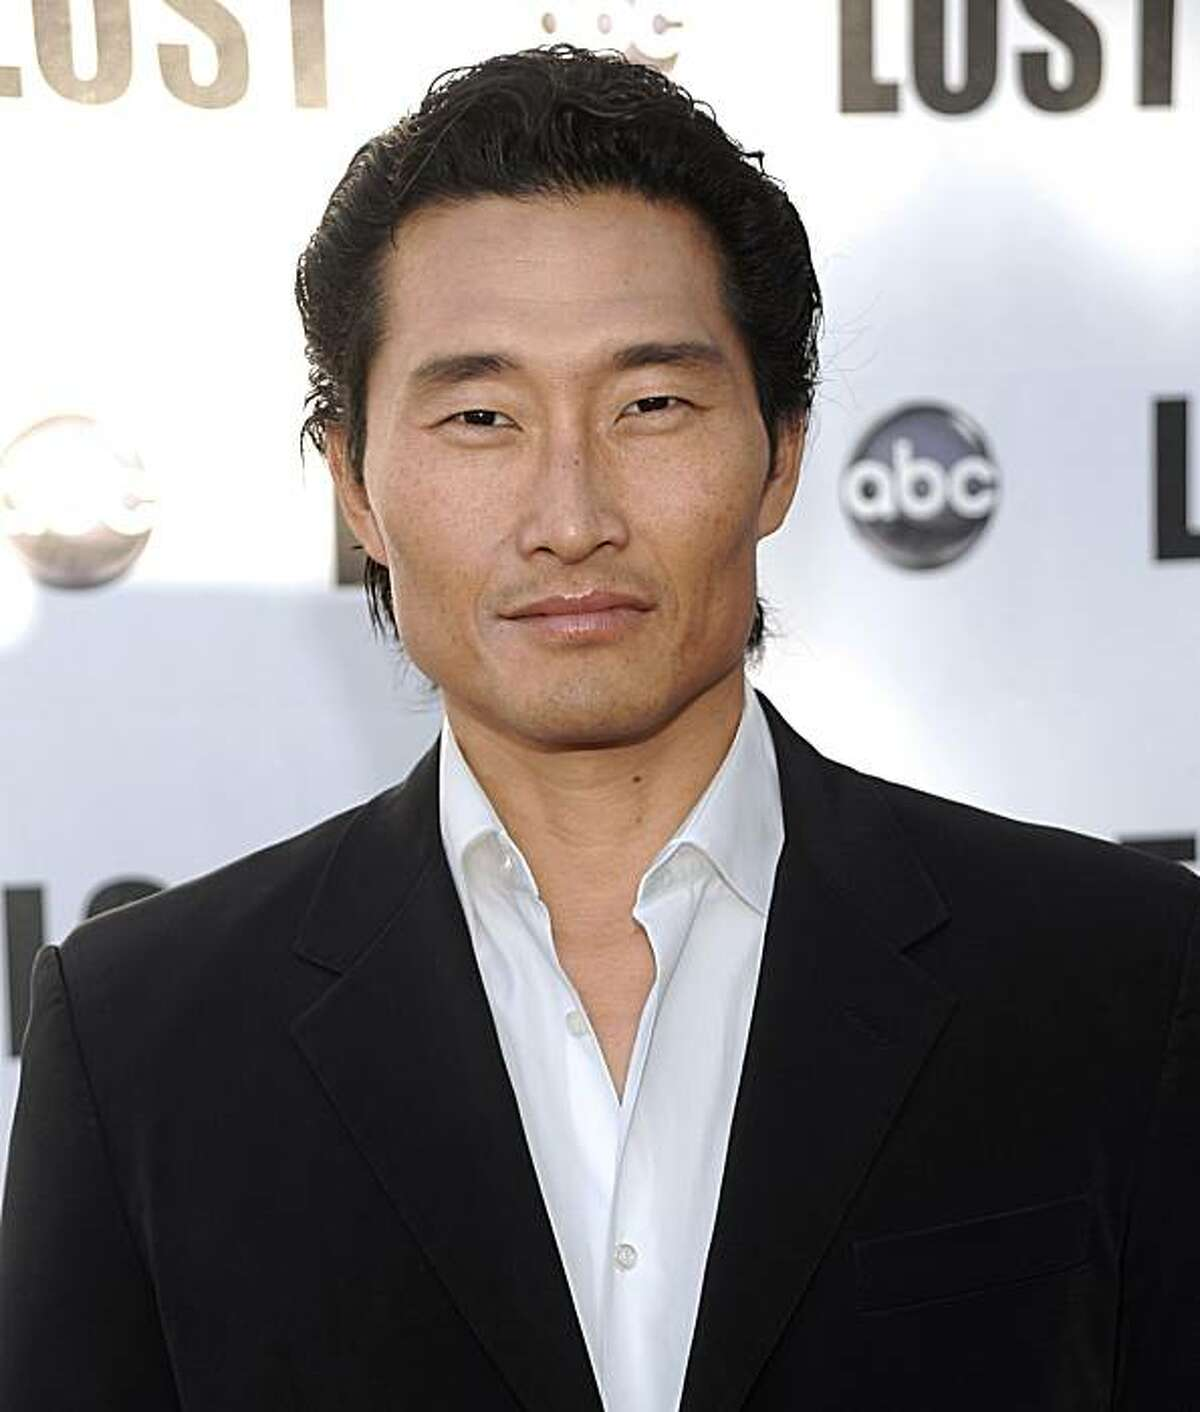 """Actor Daniel Dae Kim arrives at the """"Lost Live: The Final Celebration"""" in Los Angeles on Thursday, May 13, 2010."""